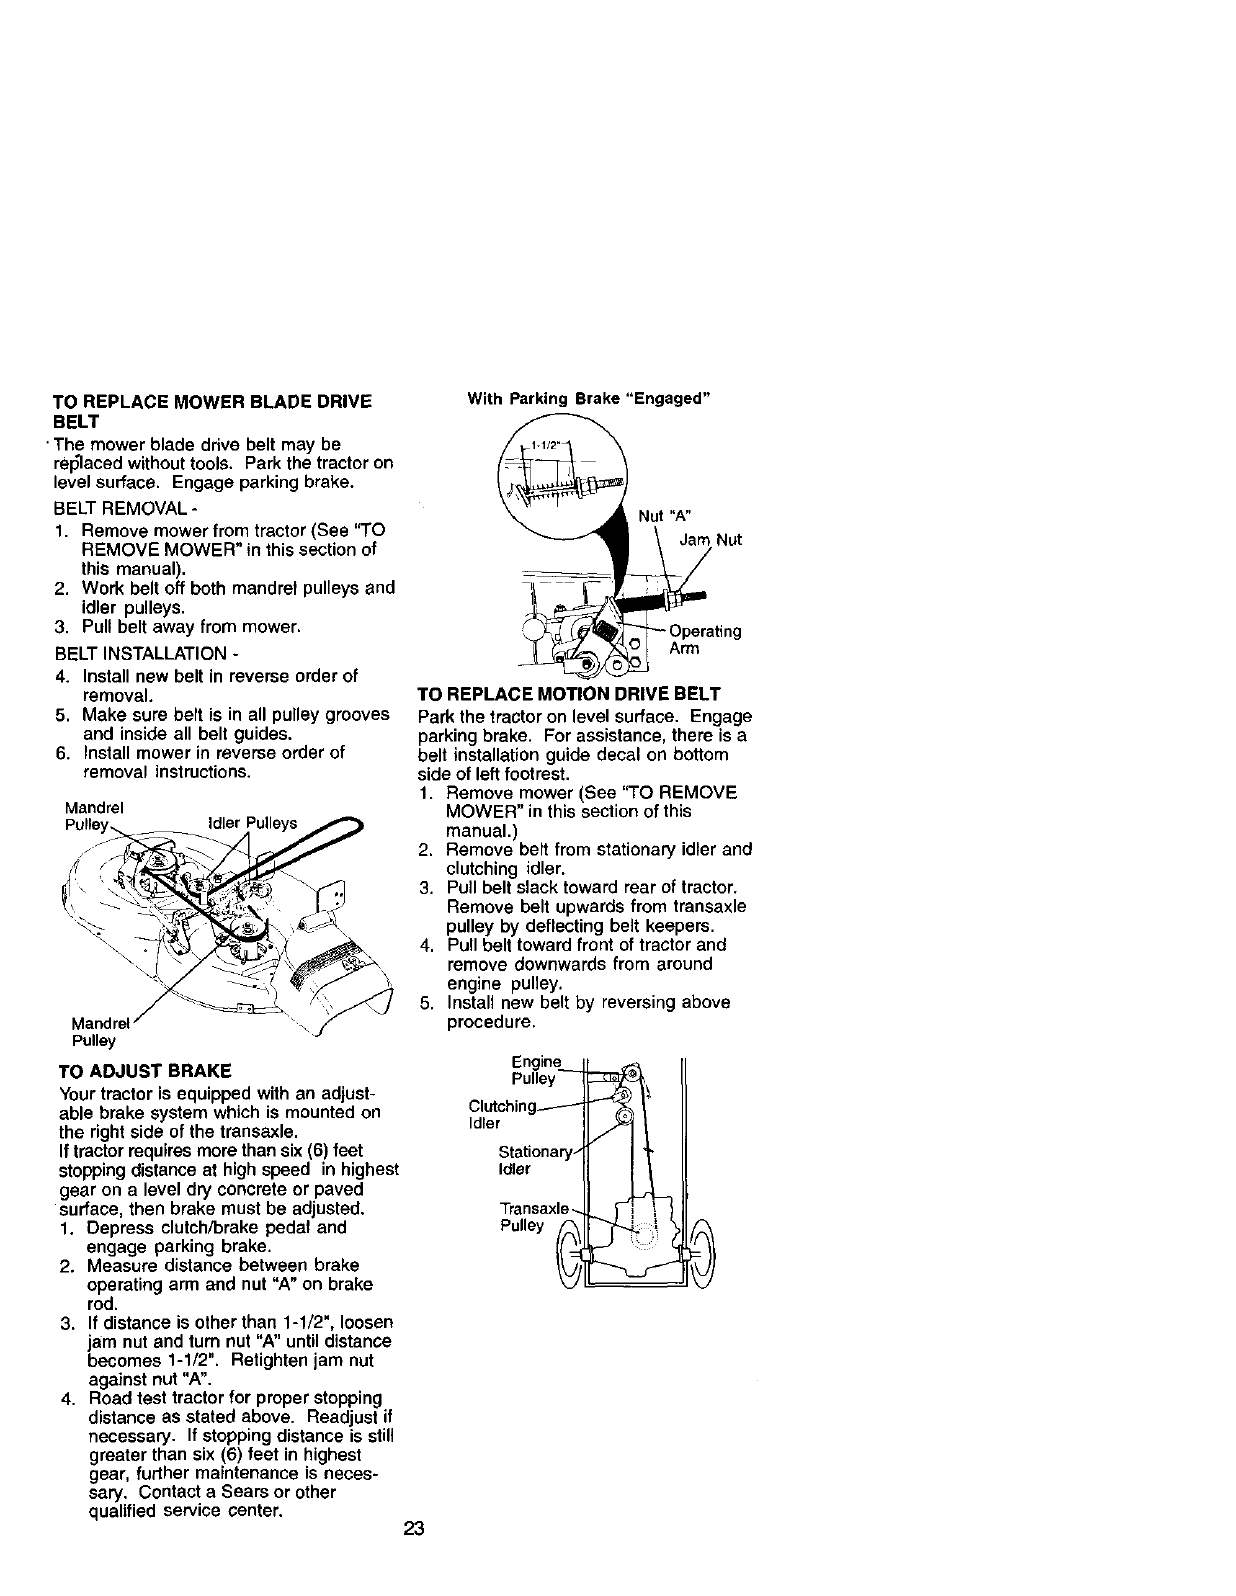 Page 23 of Craftsman Lawn Mower 917.272051 User Guide